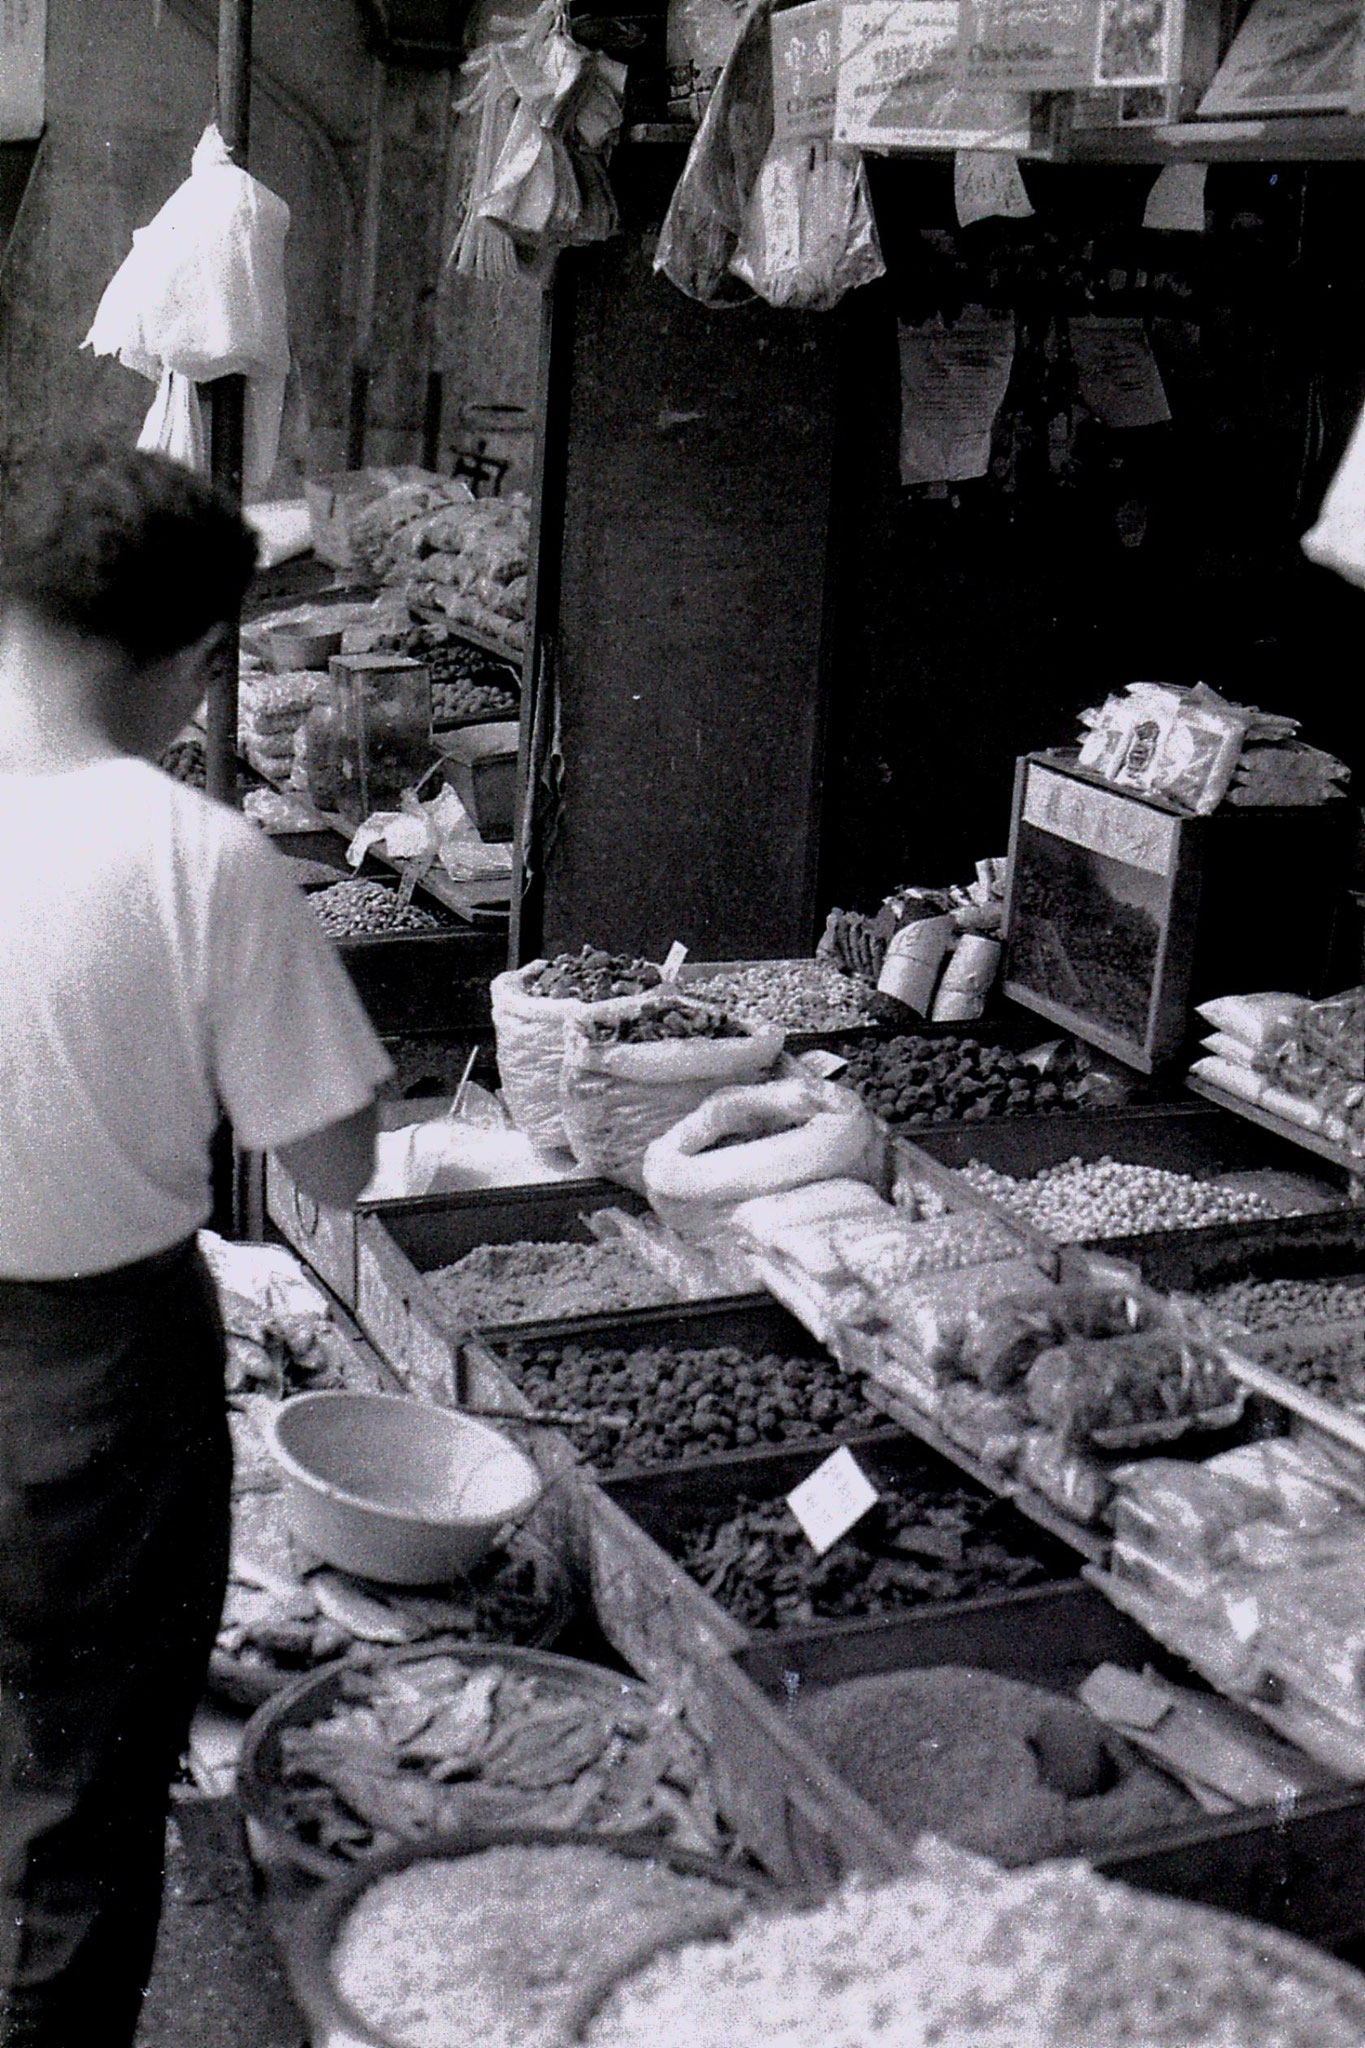 27/6/1989: 28: Shaoxing market, dried fish and other good